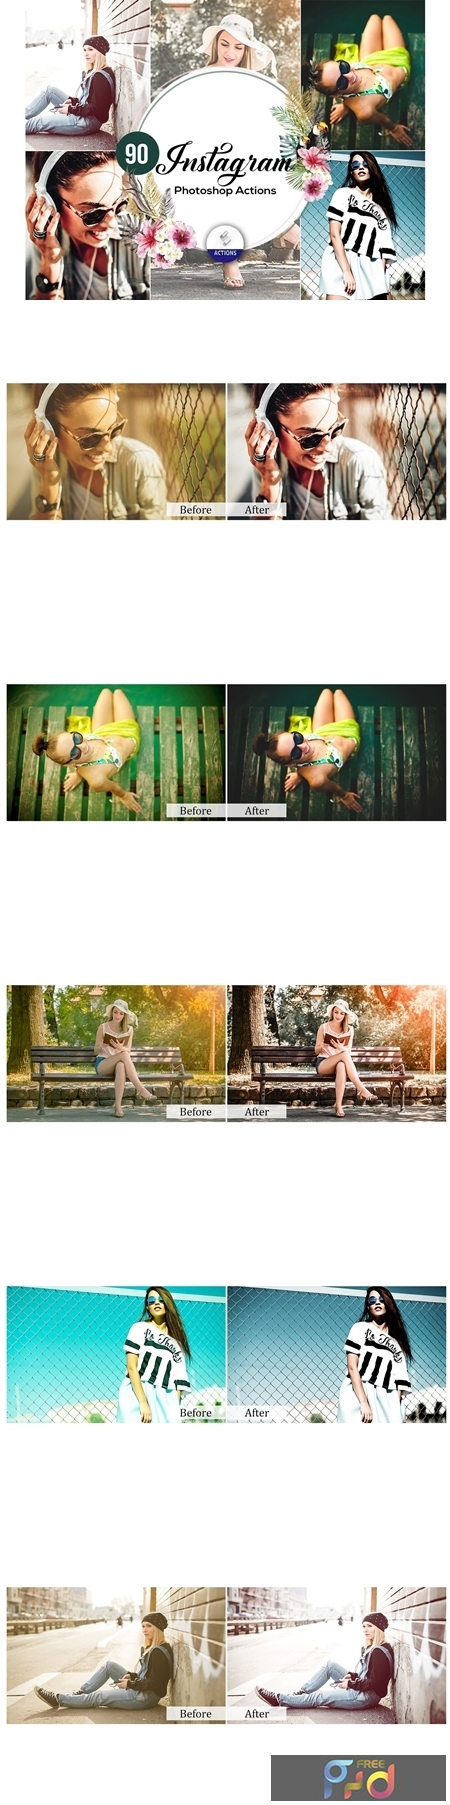 90 Instagram Photoshop Actions 3948322 1